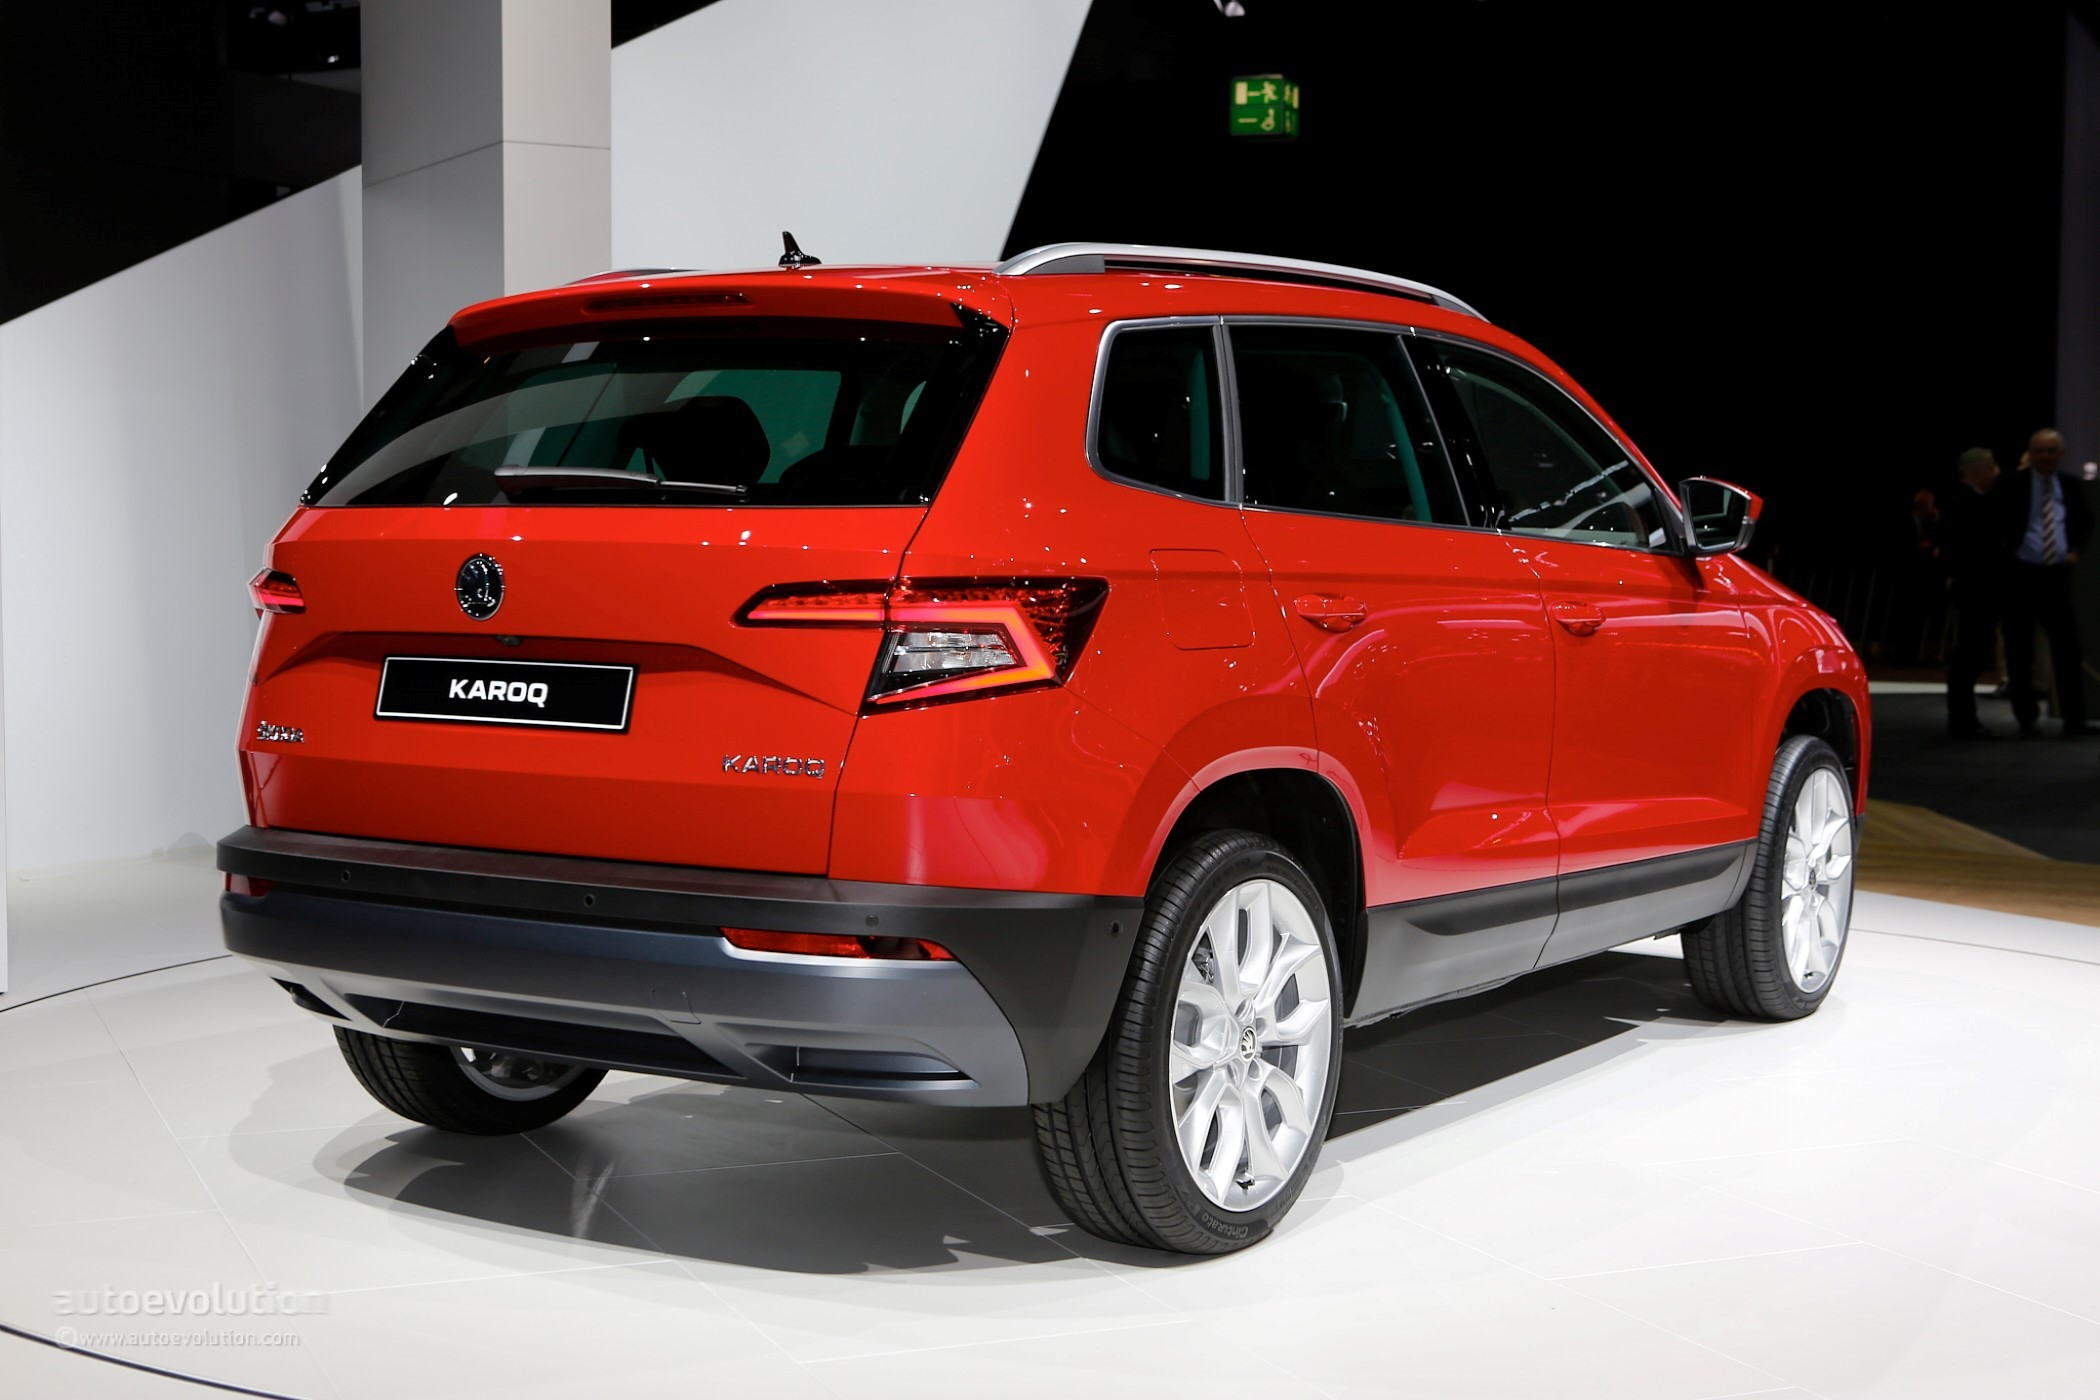 skoda karoq 2 0 tdi 150 hp acceleration test slightly faster than claimed autoevolution. Black Bedroom Furniture Sets. Home Design Ideas